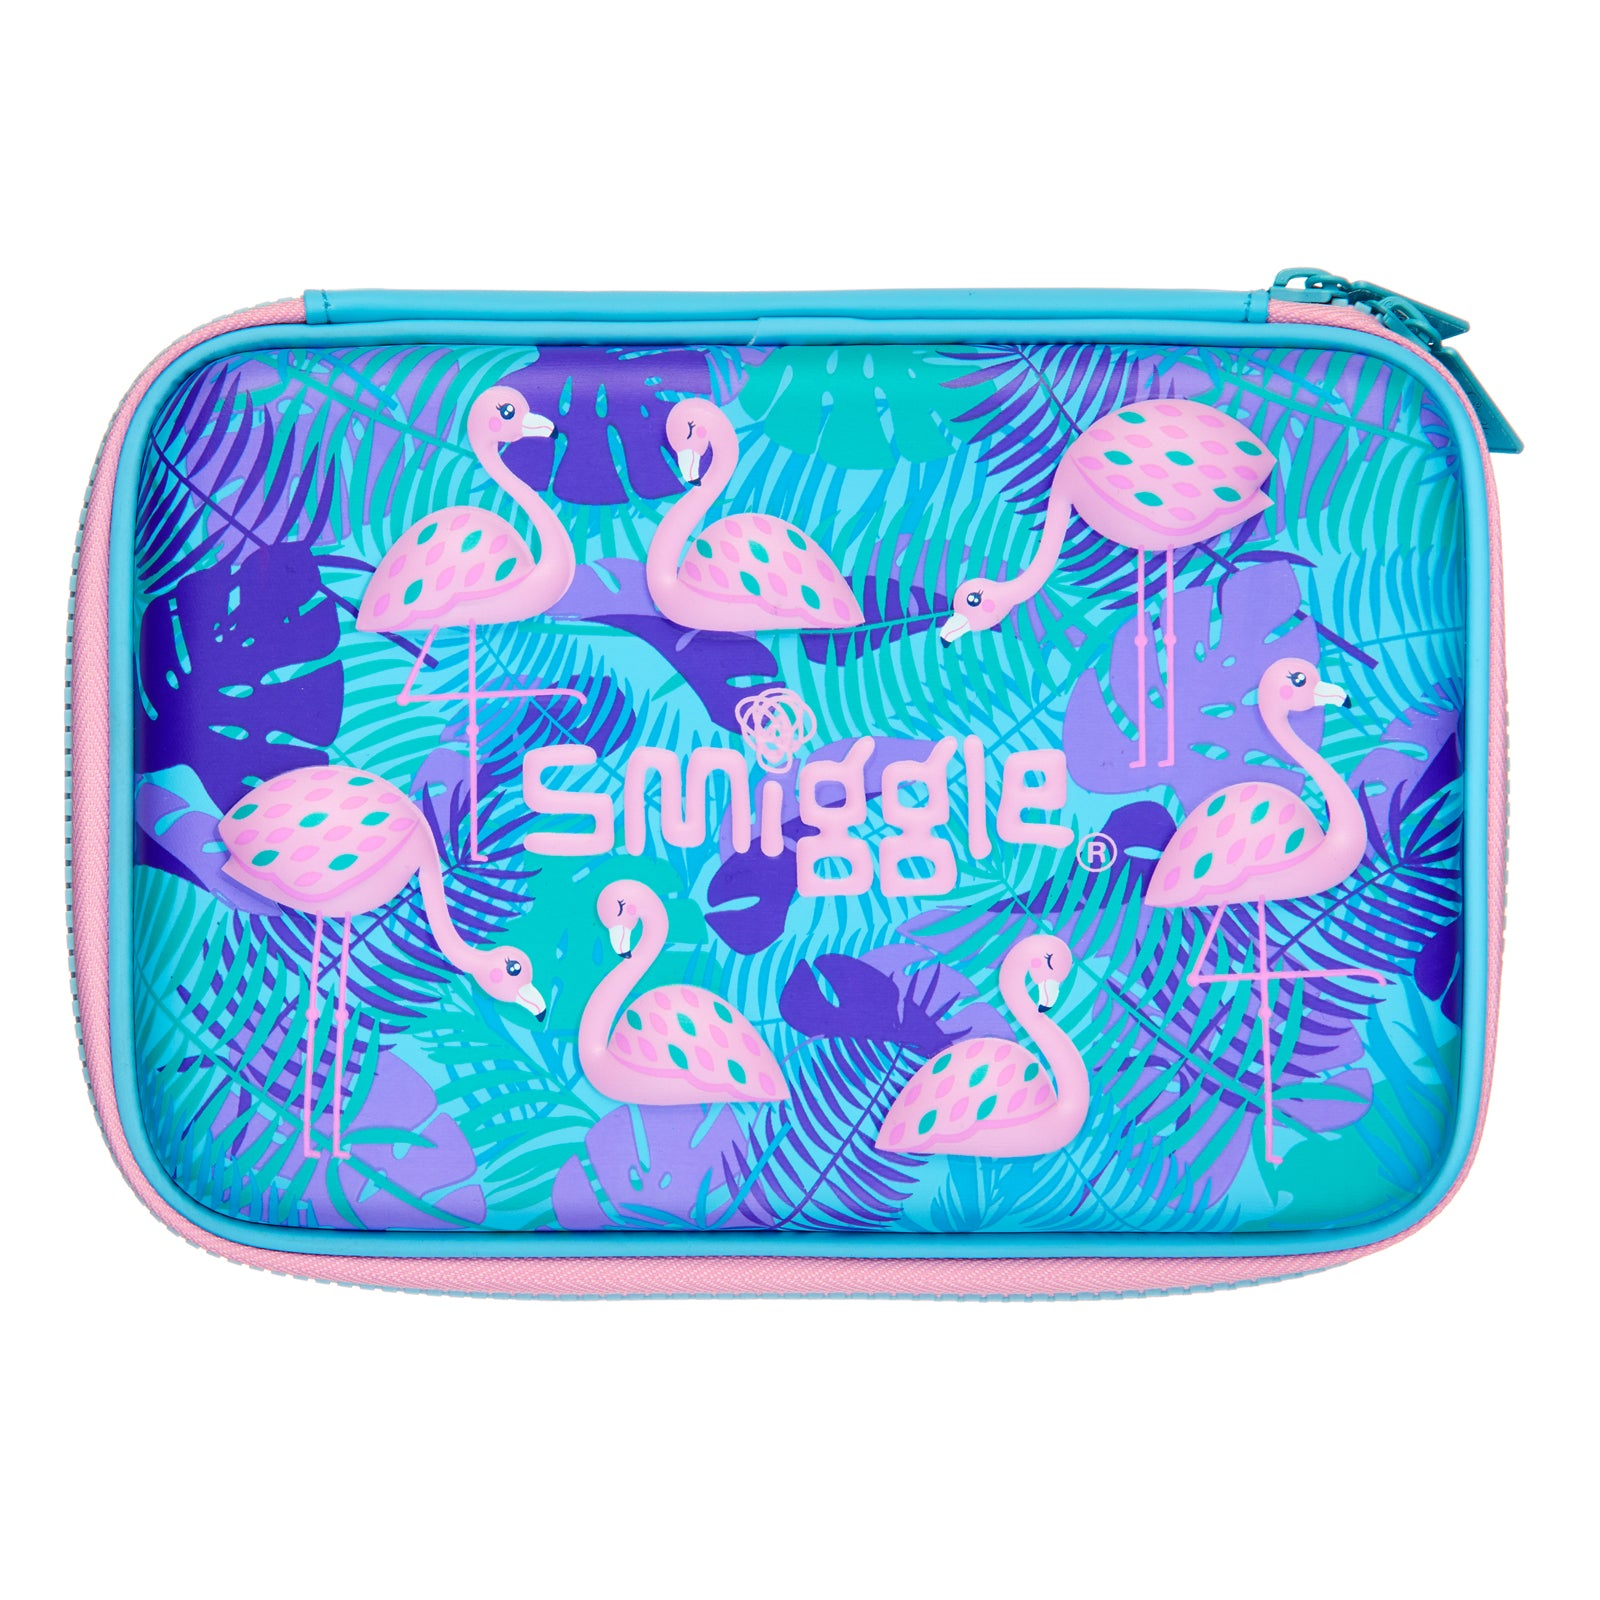 SMIGGLE - HIPPY SMALL HARDTOP PENCIL CASE BLUE